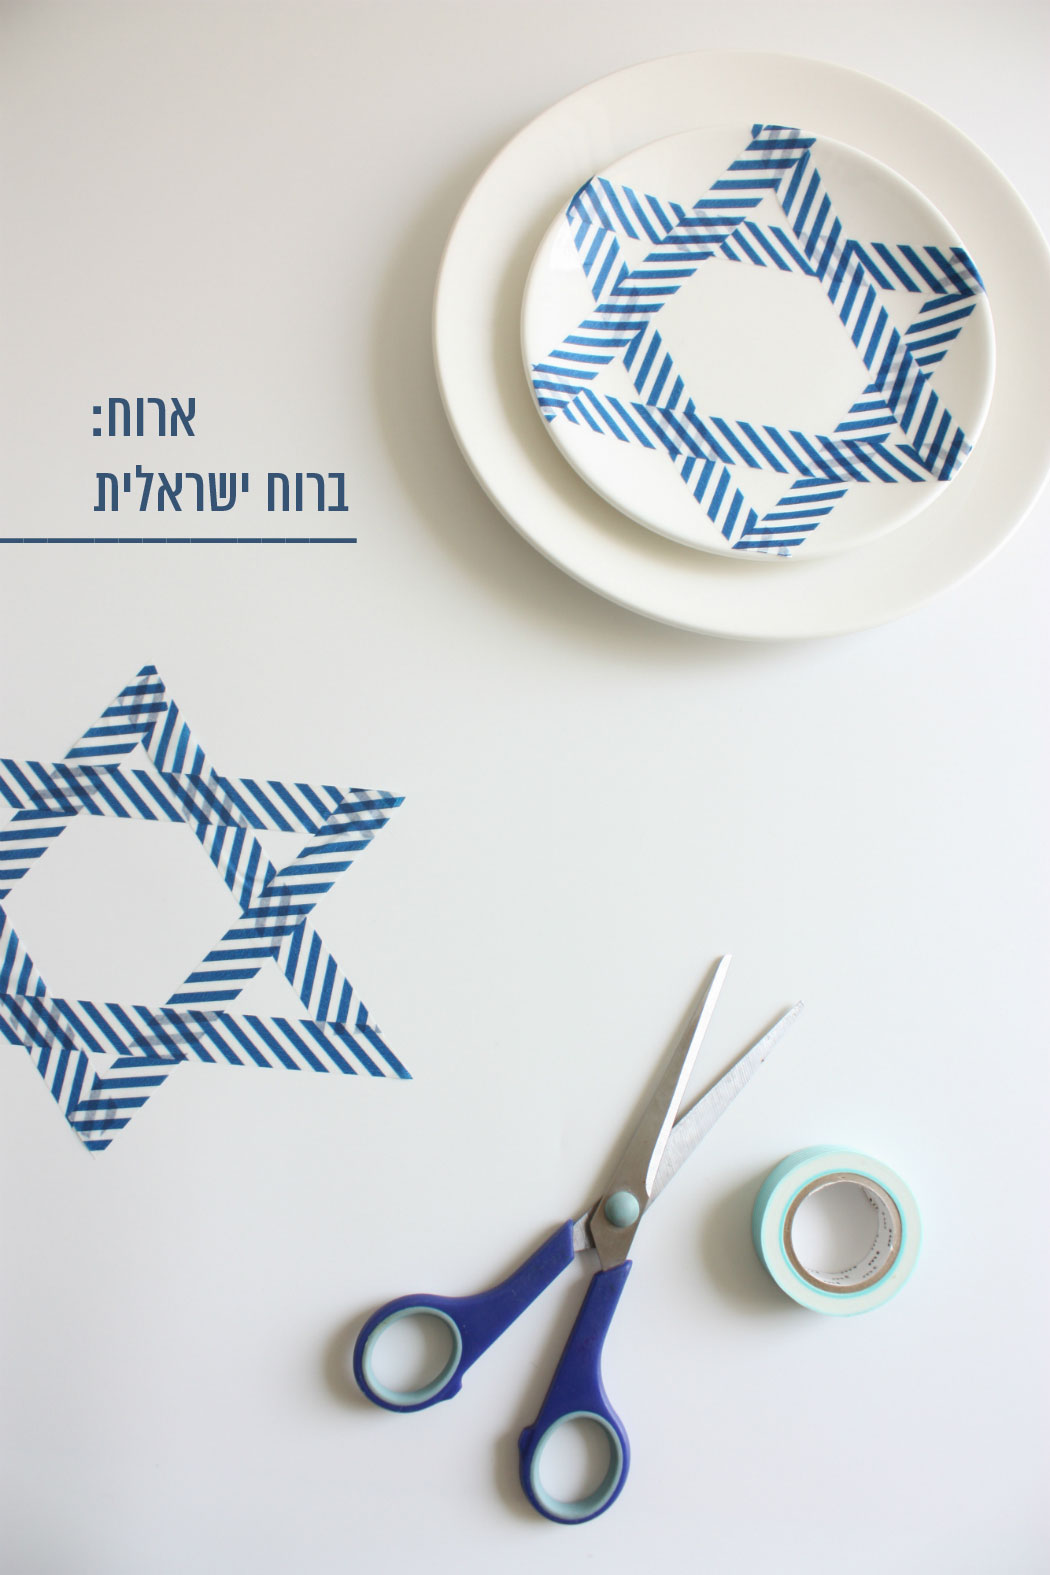 yom haatzmaut israeli independance day diy entertaining idea  washi tape www.cafe-veyafe.com